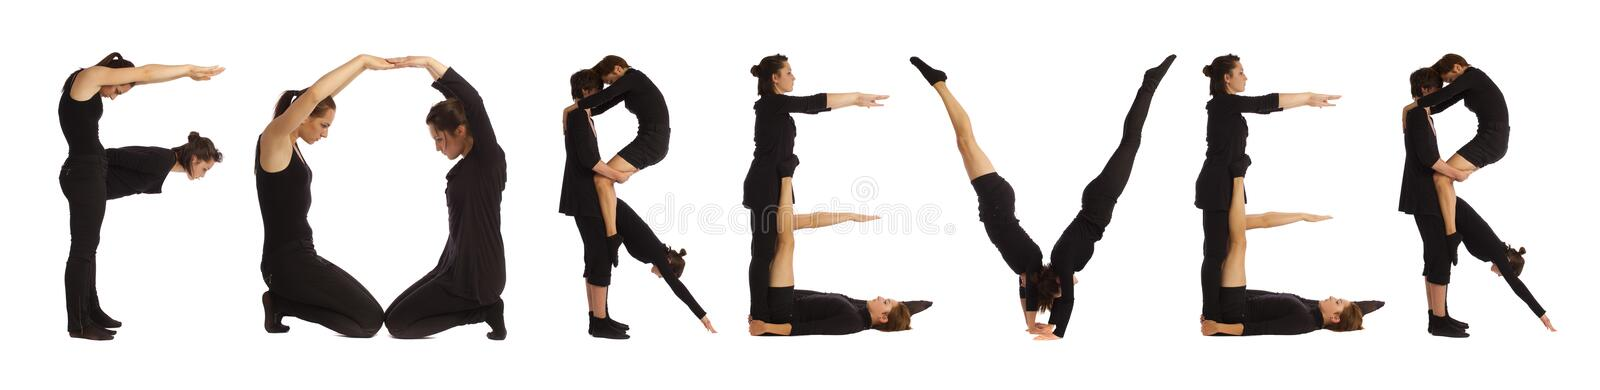 Black dressed people forming word FOREVER stock photography